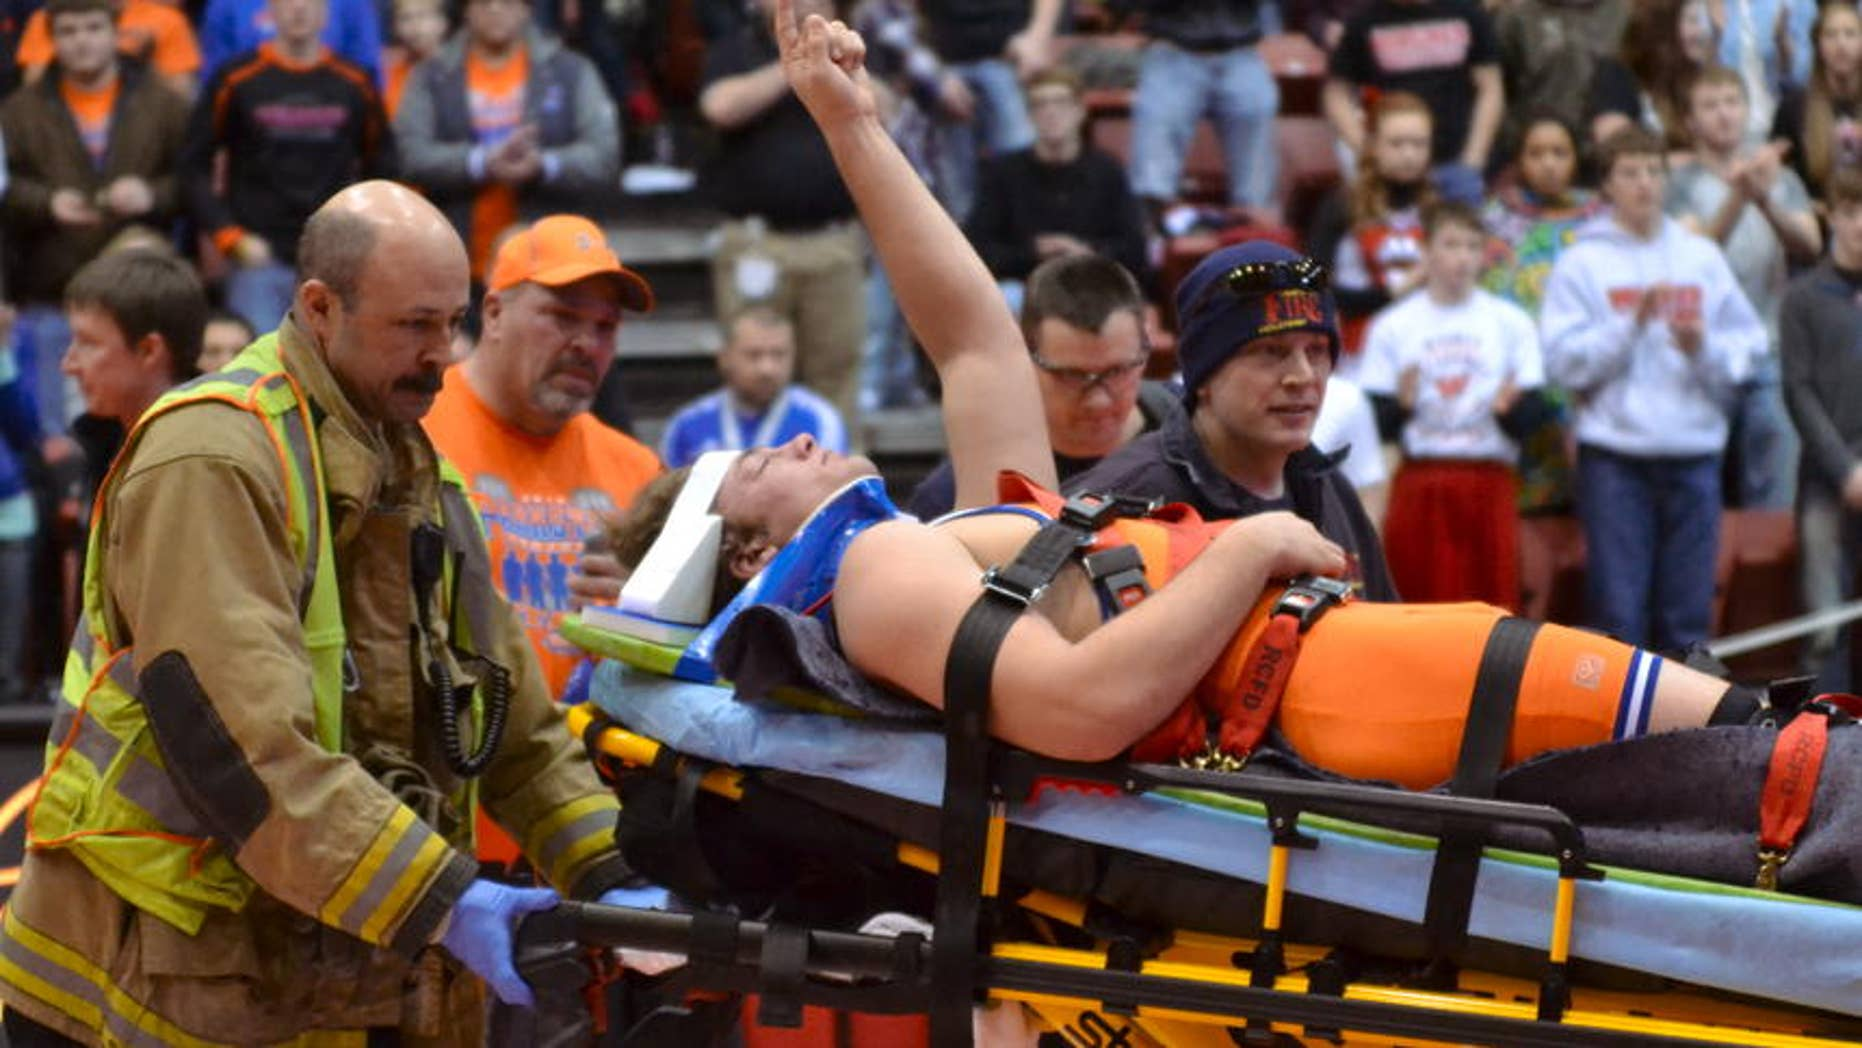 Parkston's Austin Bertram, center, is carried off the mat by medical personnel as he waves to the crowd giving him a standing ovation at the Class B state wrestling tournament on Saturday in Rapid City. (Garrick Hodge/Republic)